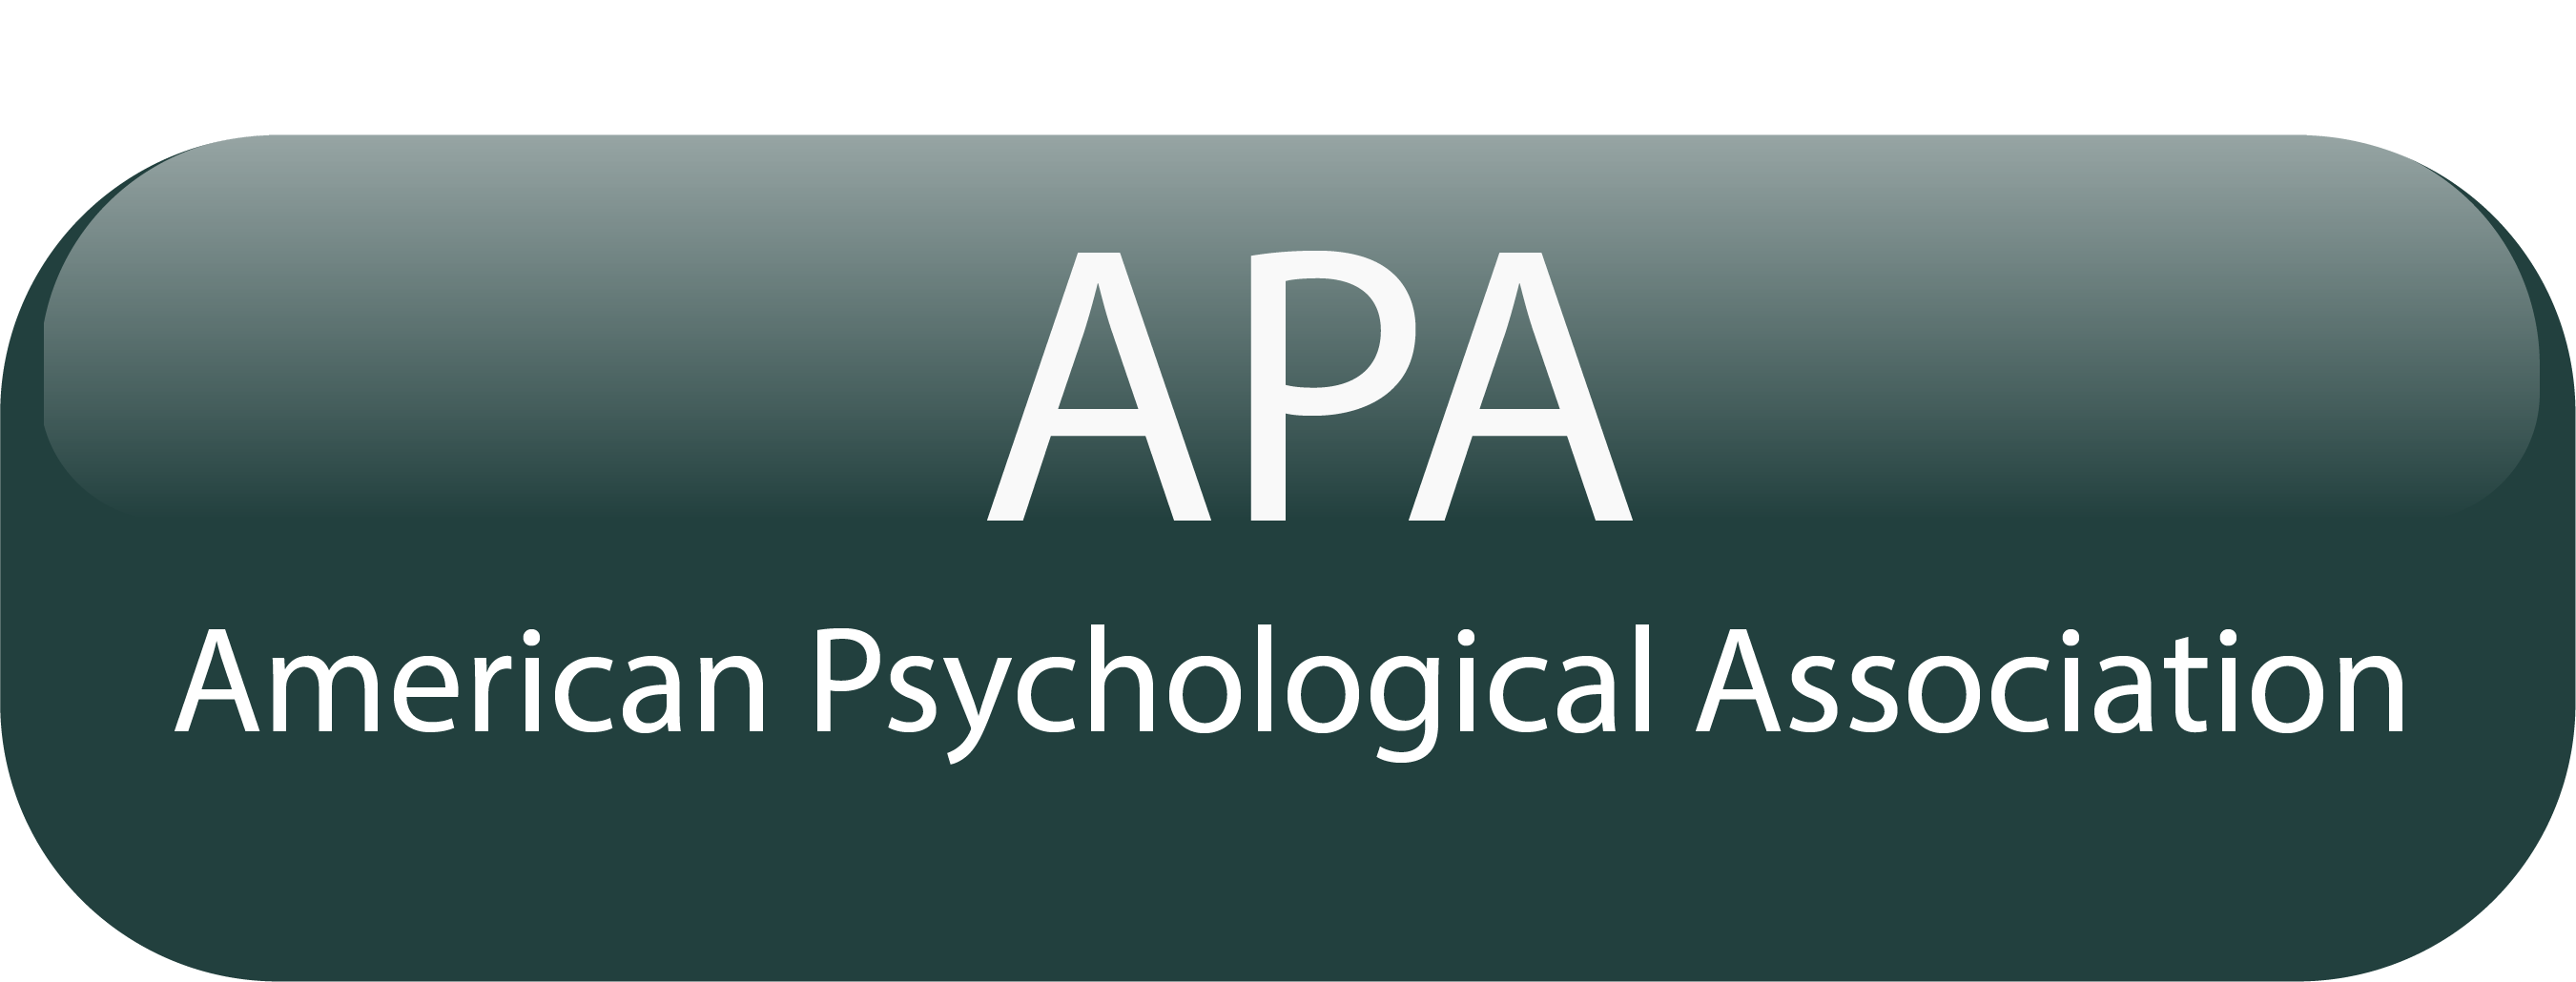 APA Button